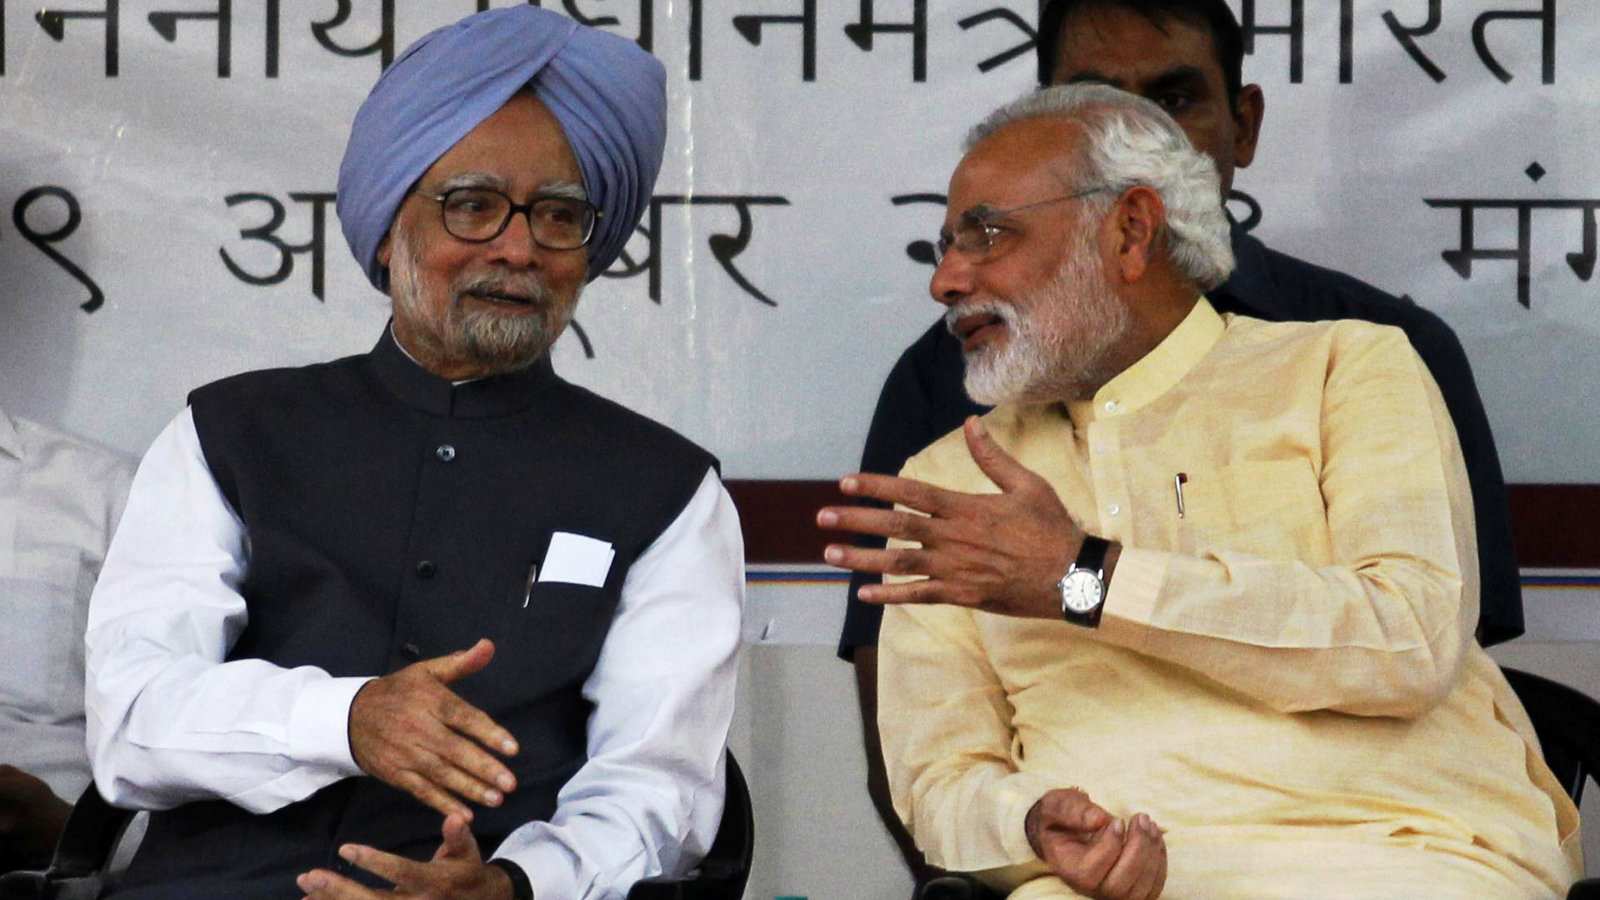 Former Indian prime minister Manmohan Singh with current prime minister Narendra Modi in Ahmedabad in 2013.